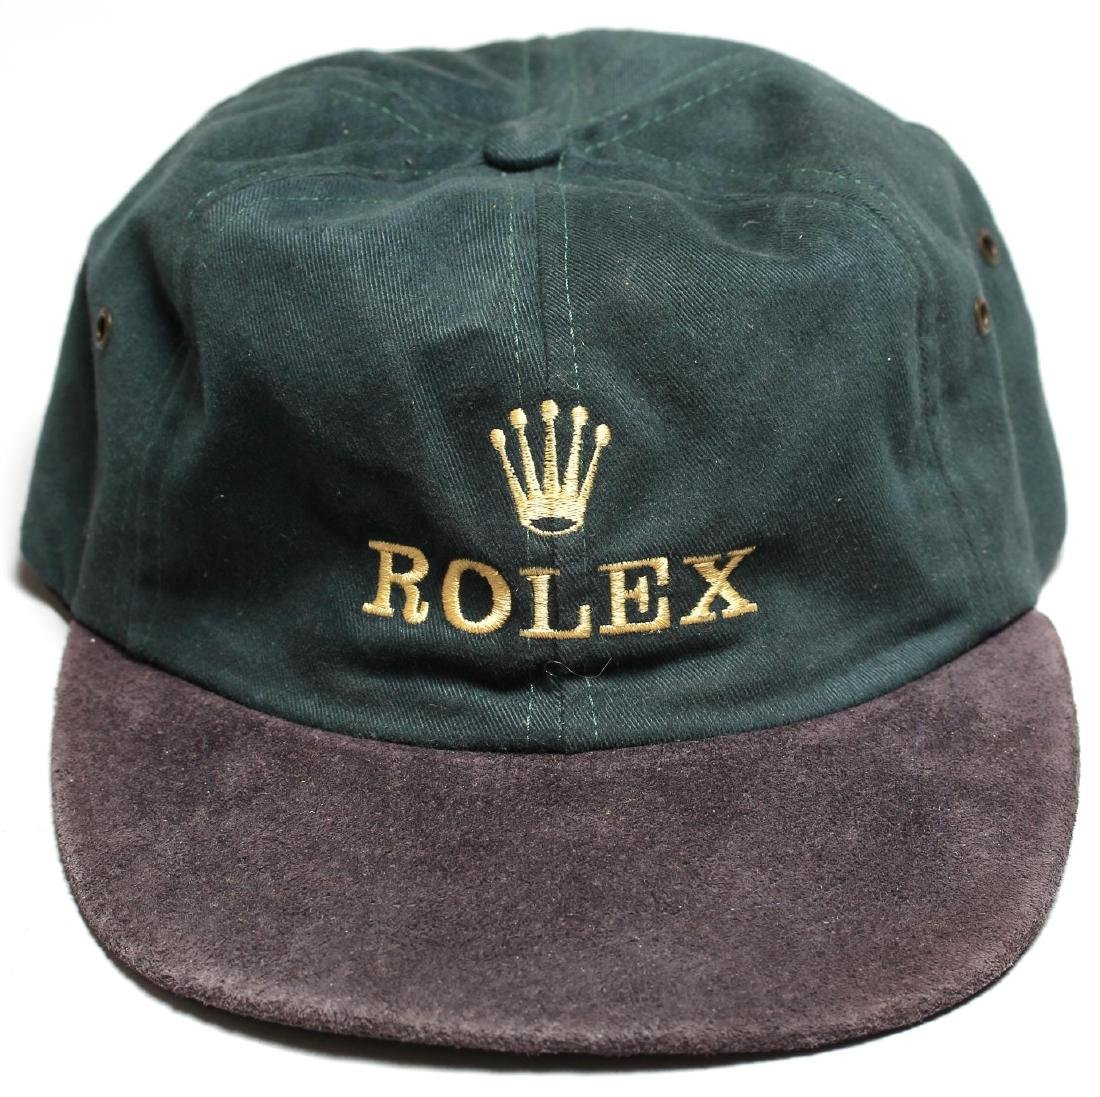 Rolex Kentucky 3-Day Event Horse Blanket & Cap - 5